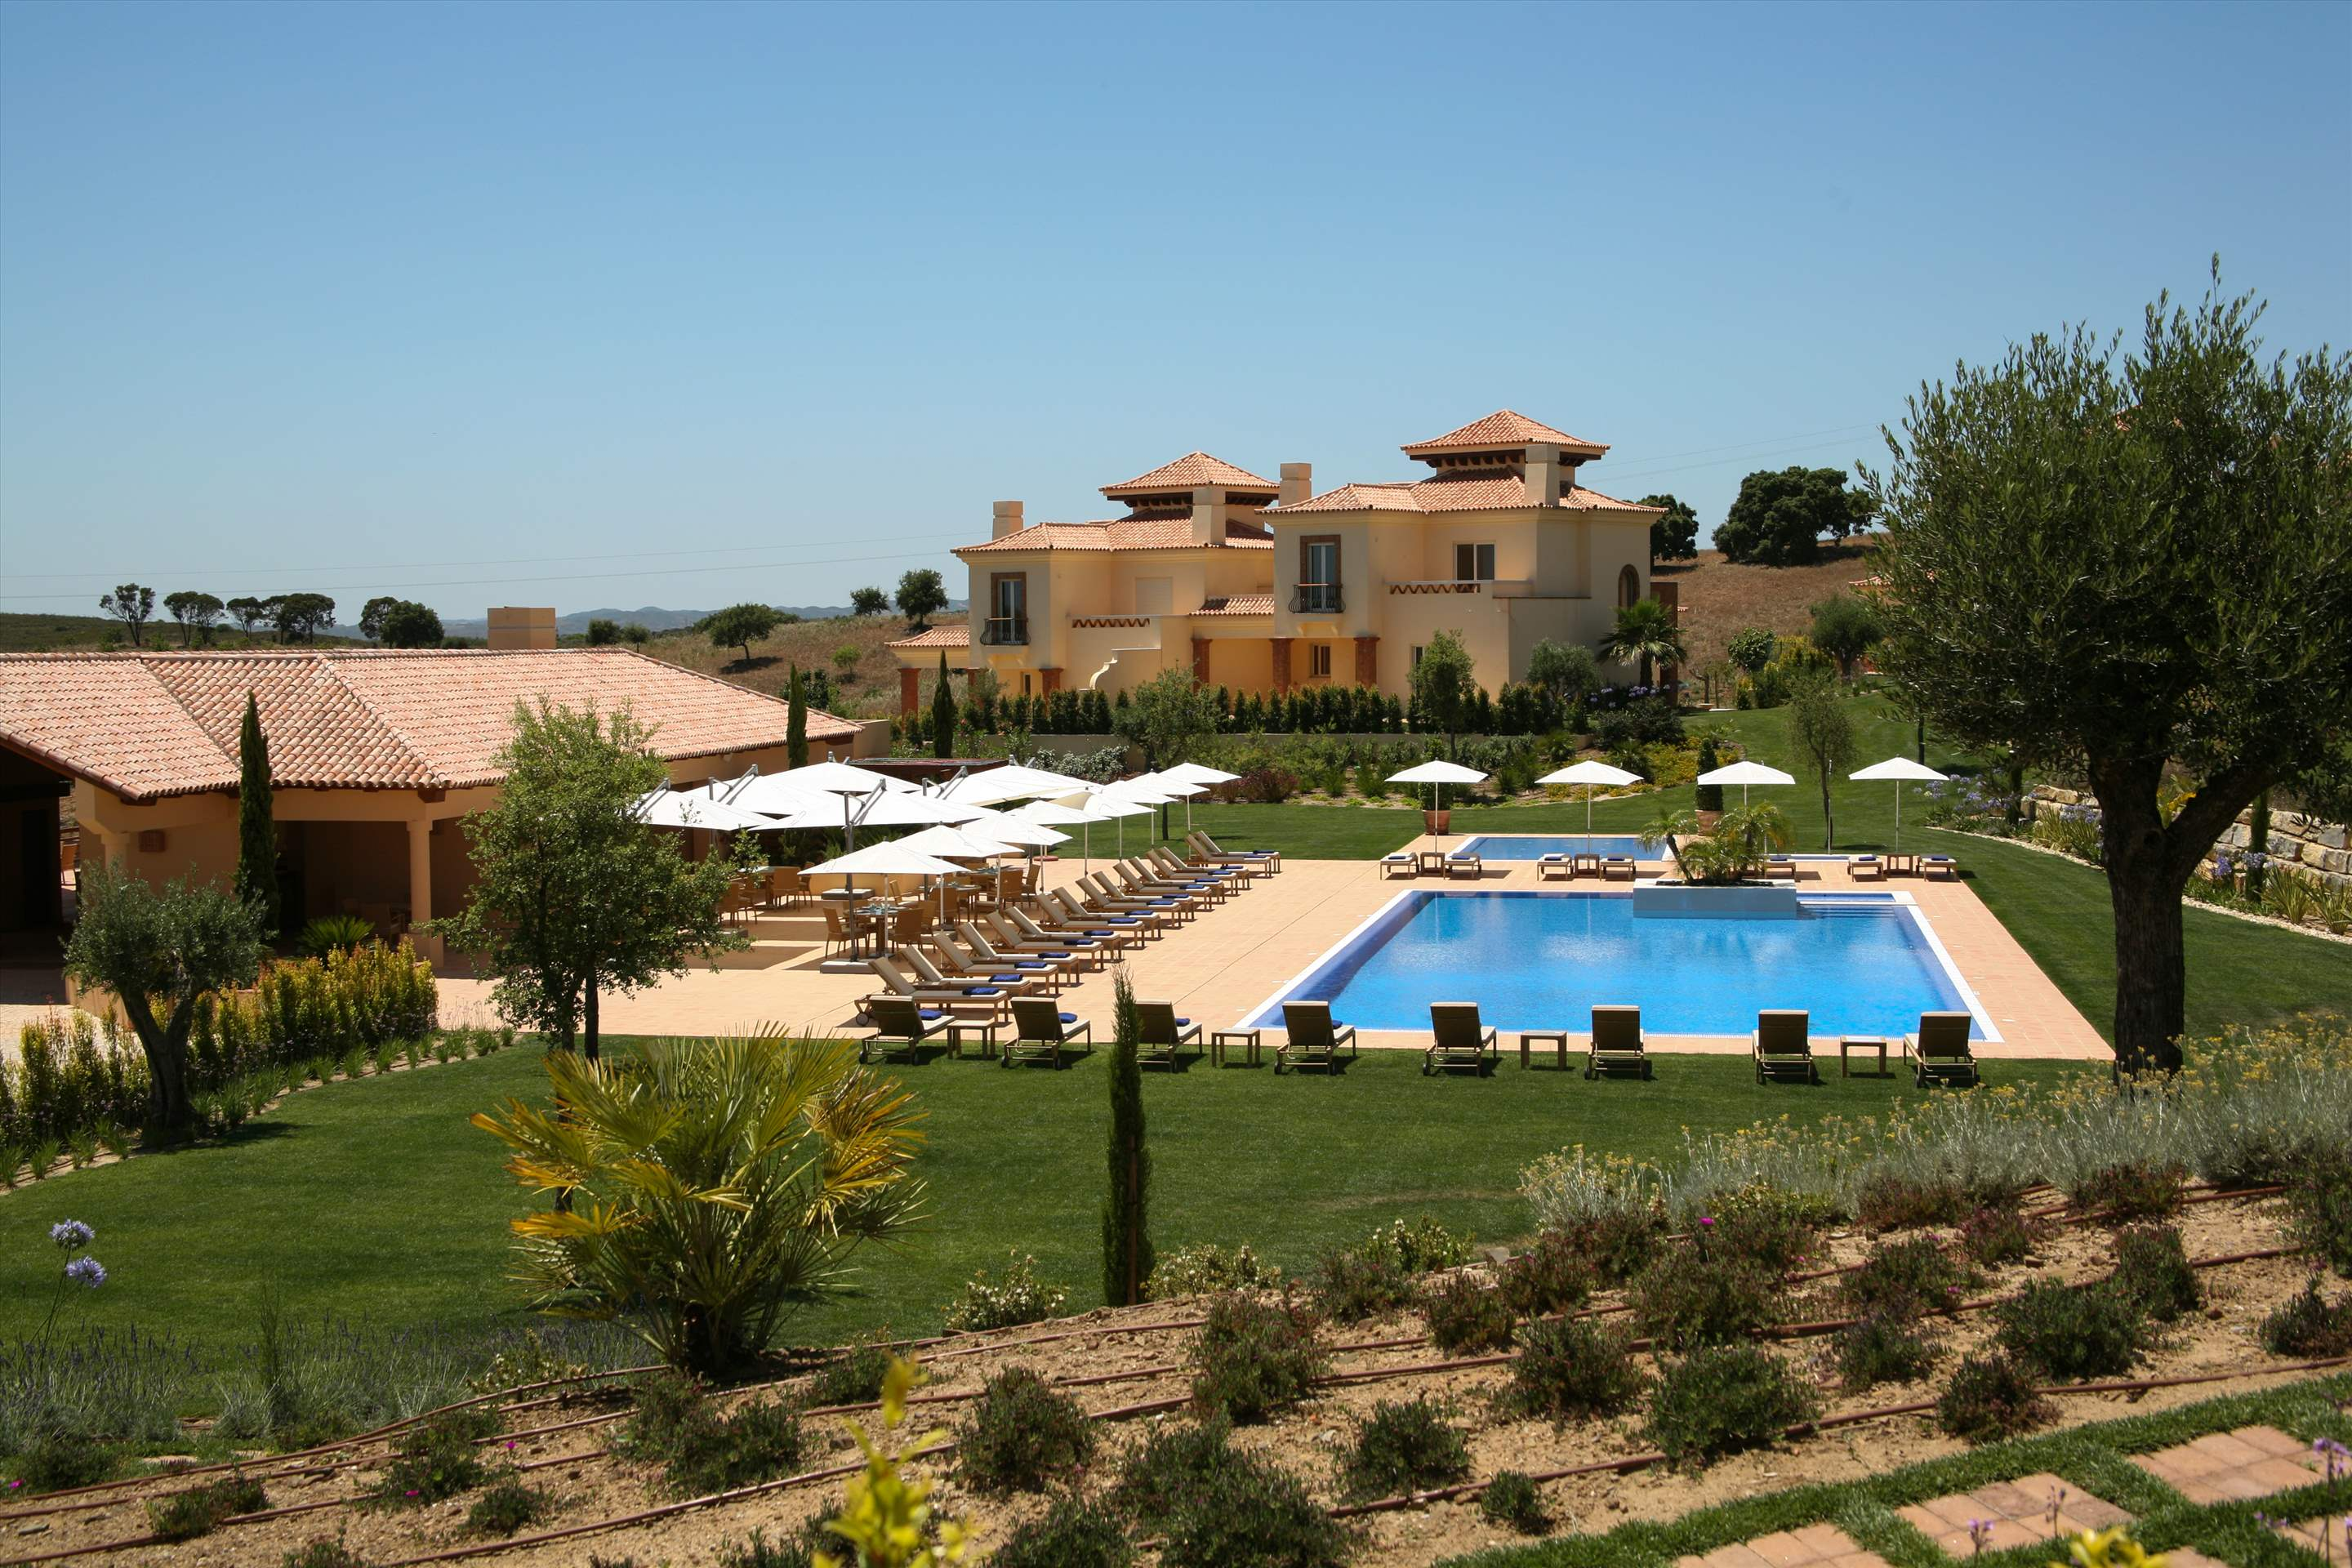 Monte Rei Three Bedroom Villa with Private Pool, 3 bedroom villa in Monte Rei Country Club, Algarve Photo #10